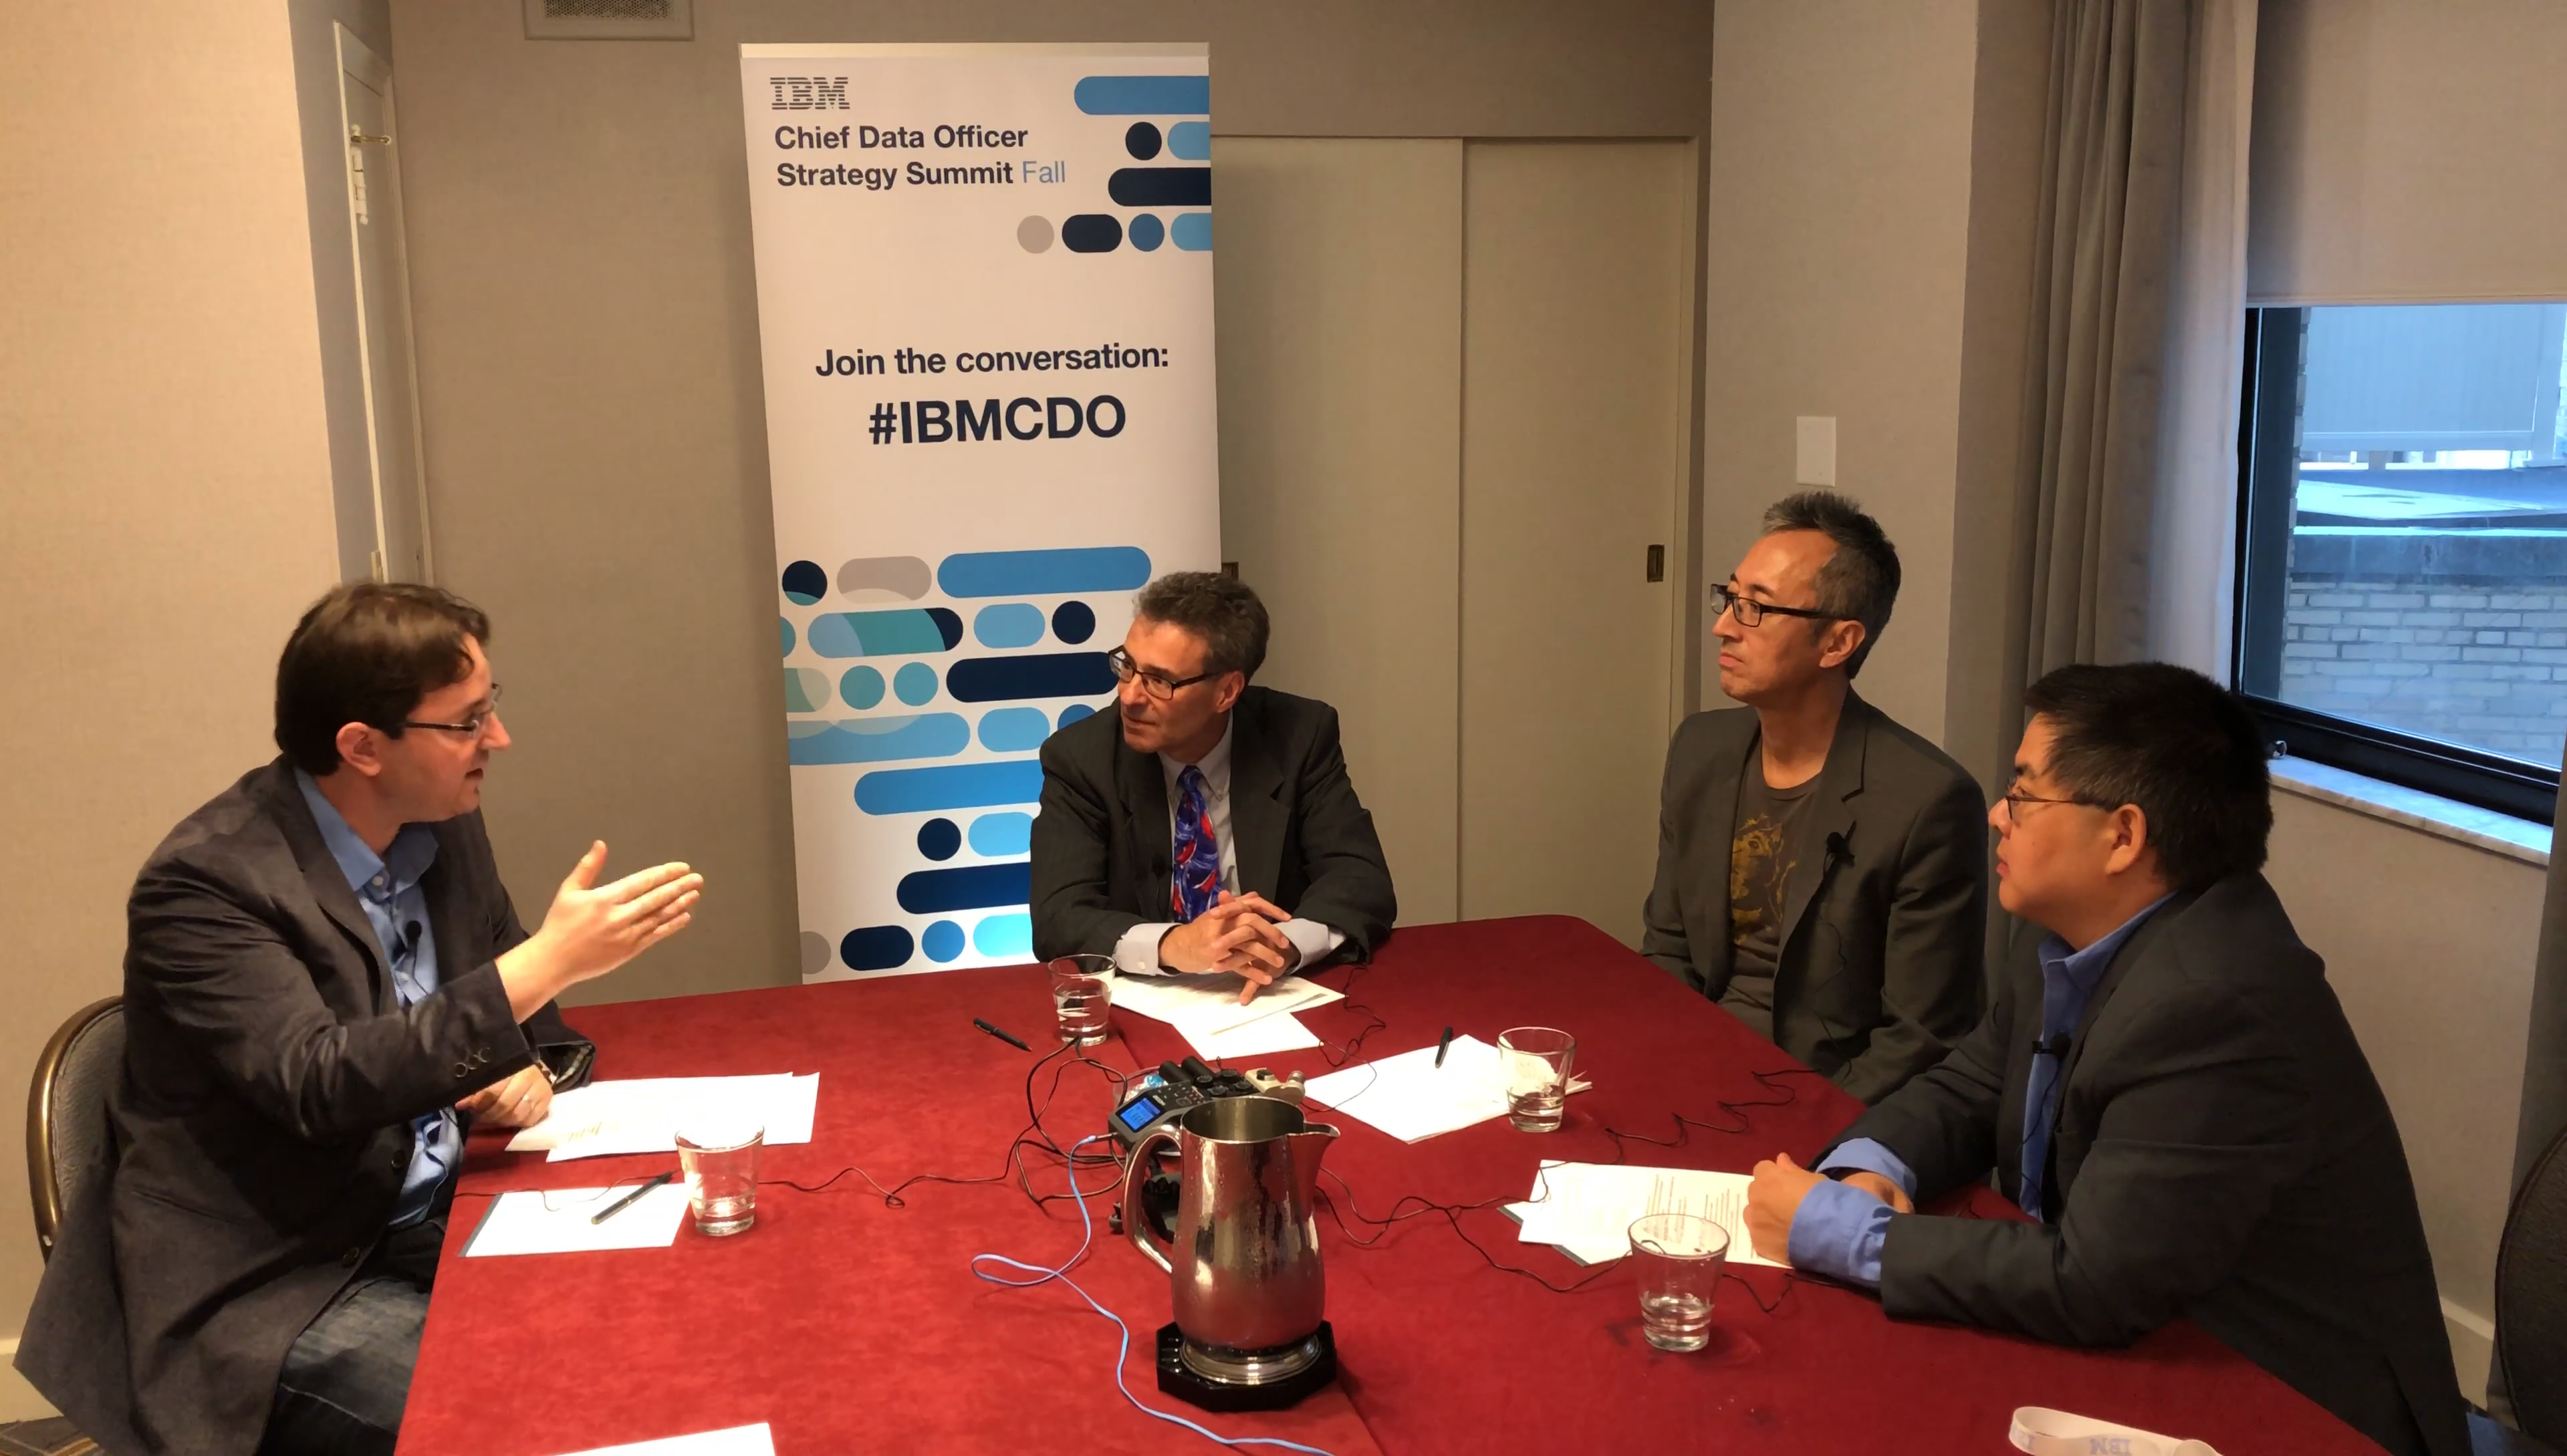 Data science, machine learning and the CDO - An expert discussion - IBM 20CDO 20Influencer 20Roundtable 20Fall 202017 - Data science, machine learning and the CDO – An expert discussion